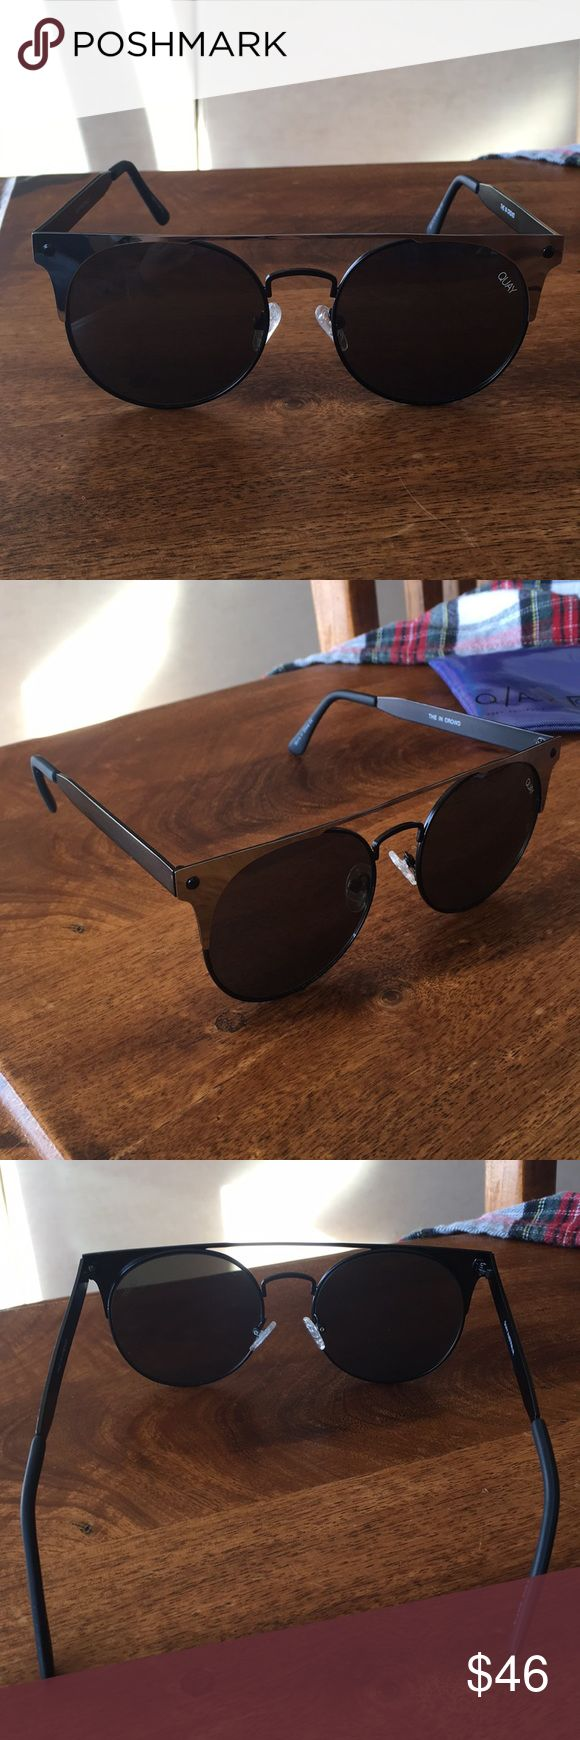 QUAY glasses comes with case. worn a few times. amazing condition! a few tiny scratches but not even noticeable! Quay Australia Accessories Glasses